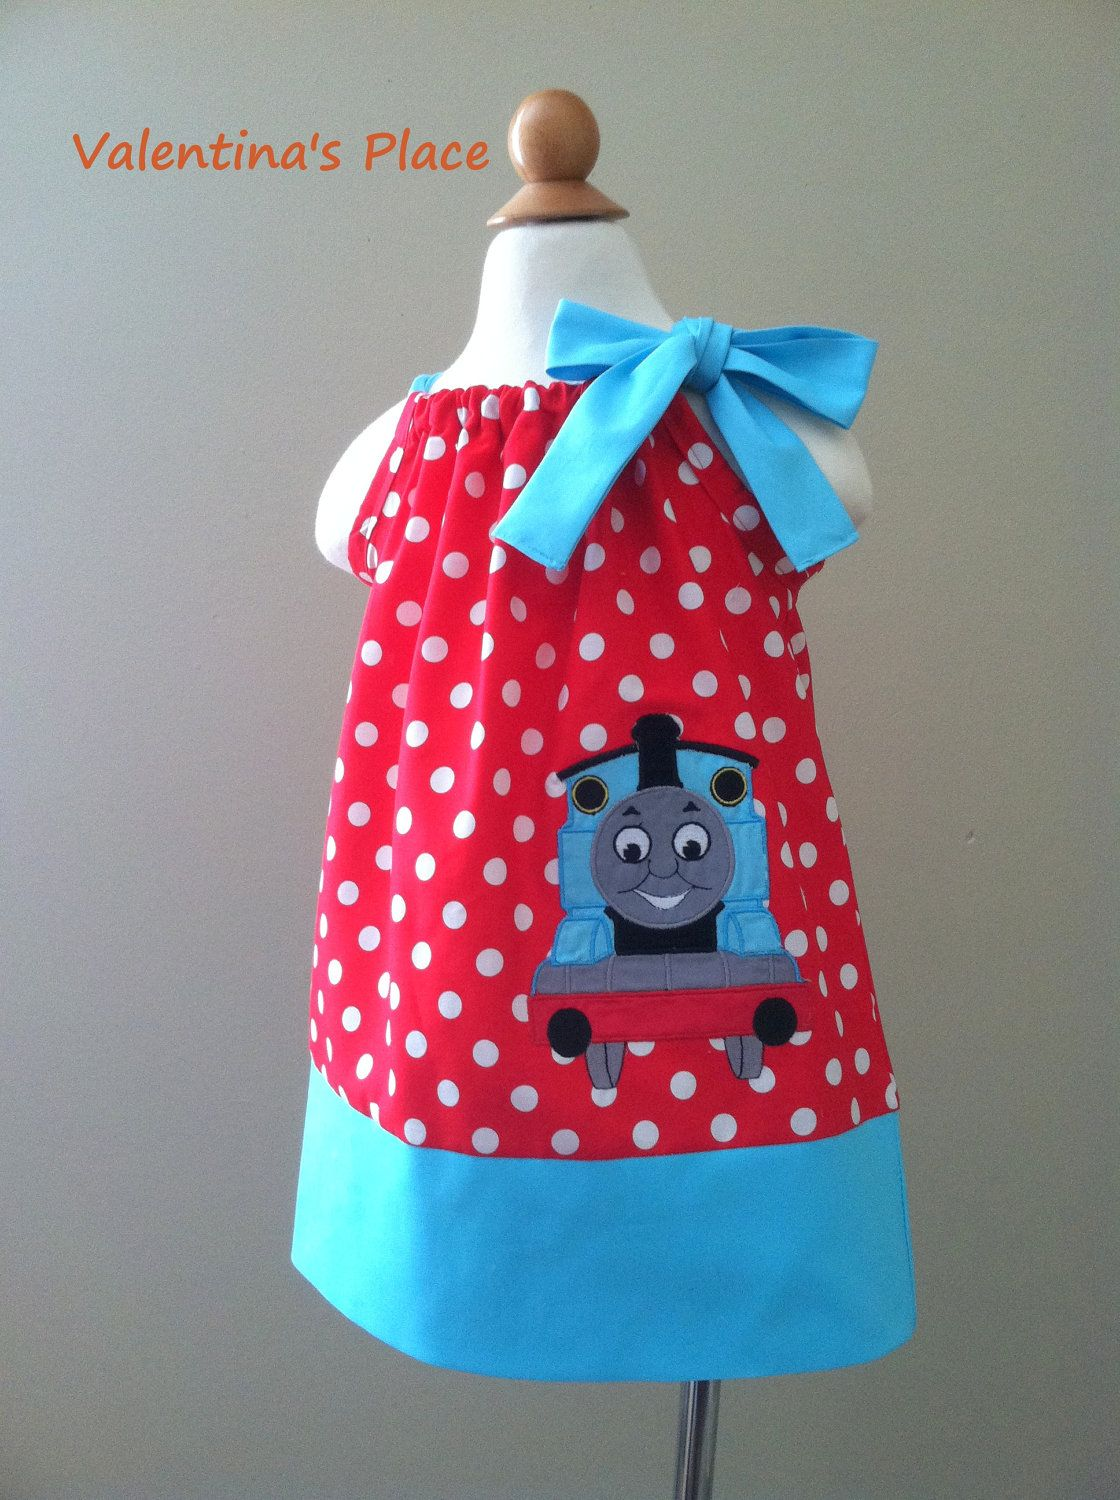 Thomas The Train Pillowcase Amusing Thomas The Train Pillowcase Style Dress For Girls  Birthdays Design Ideas